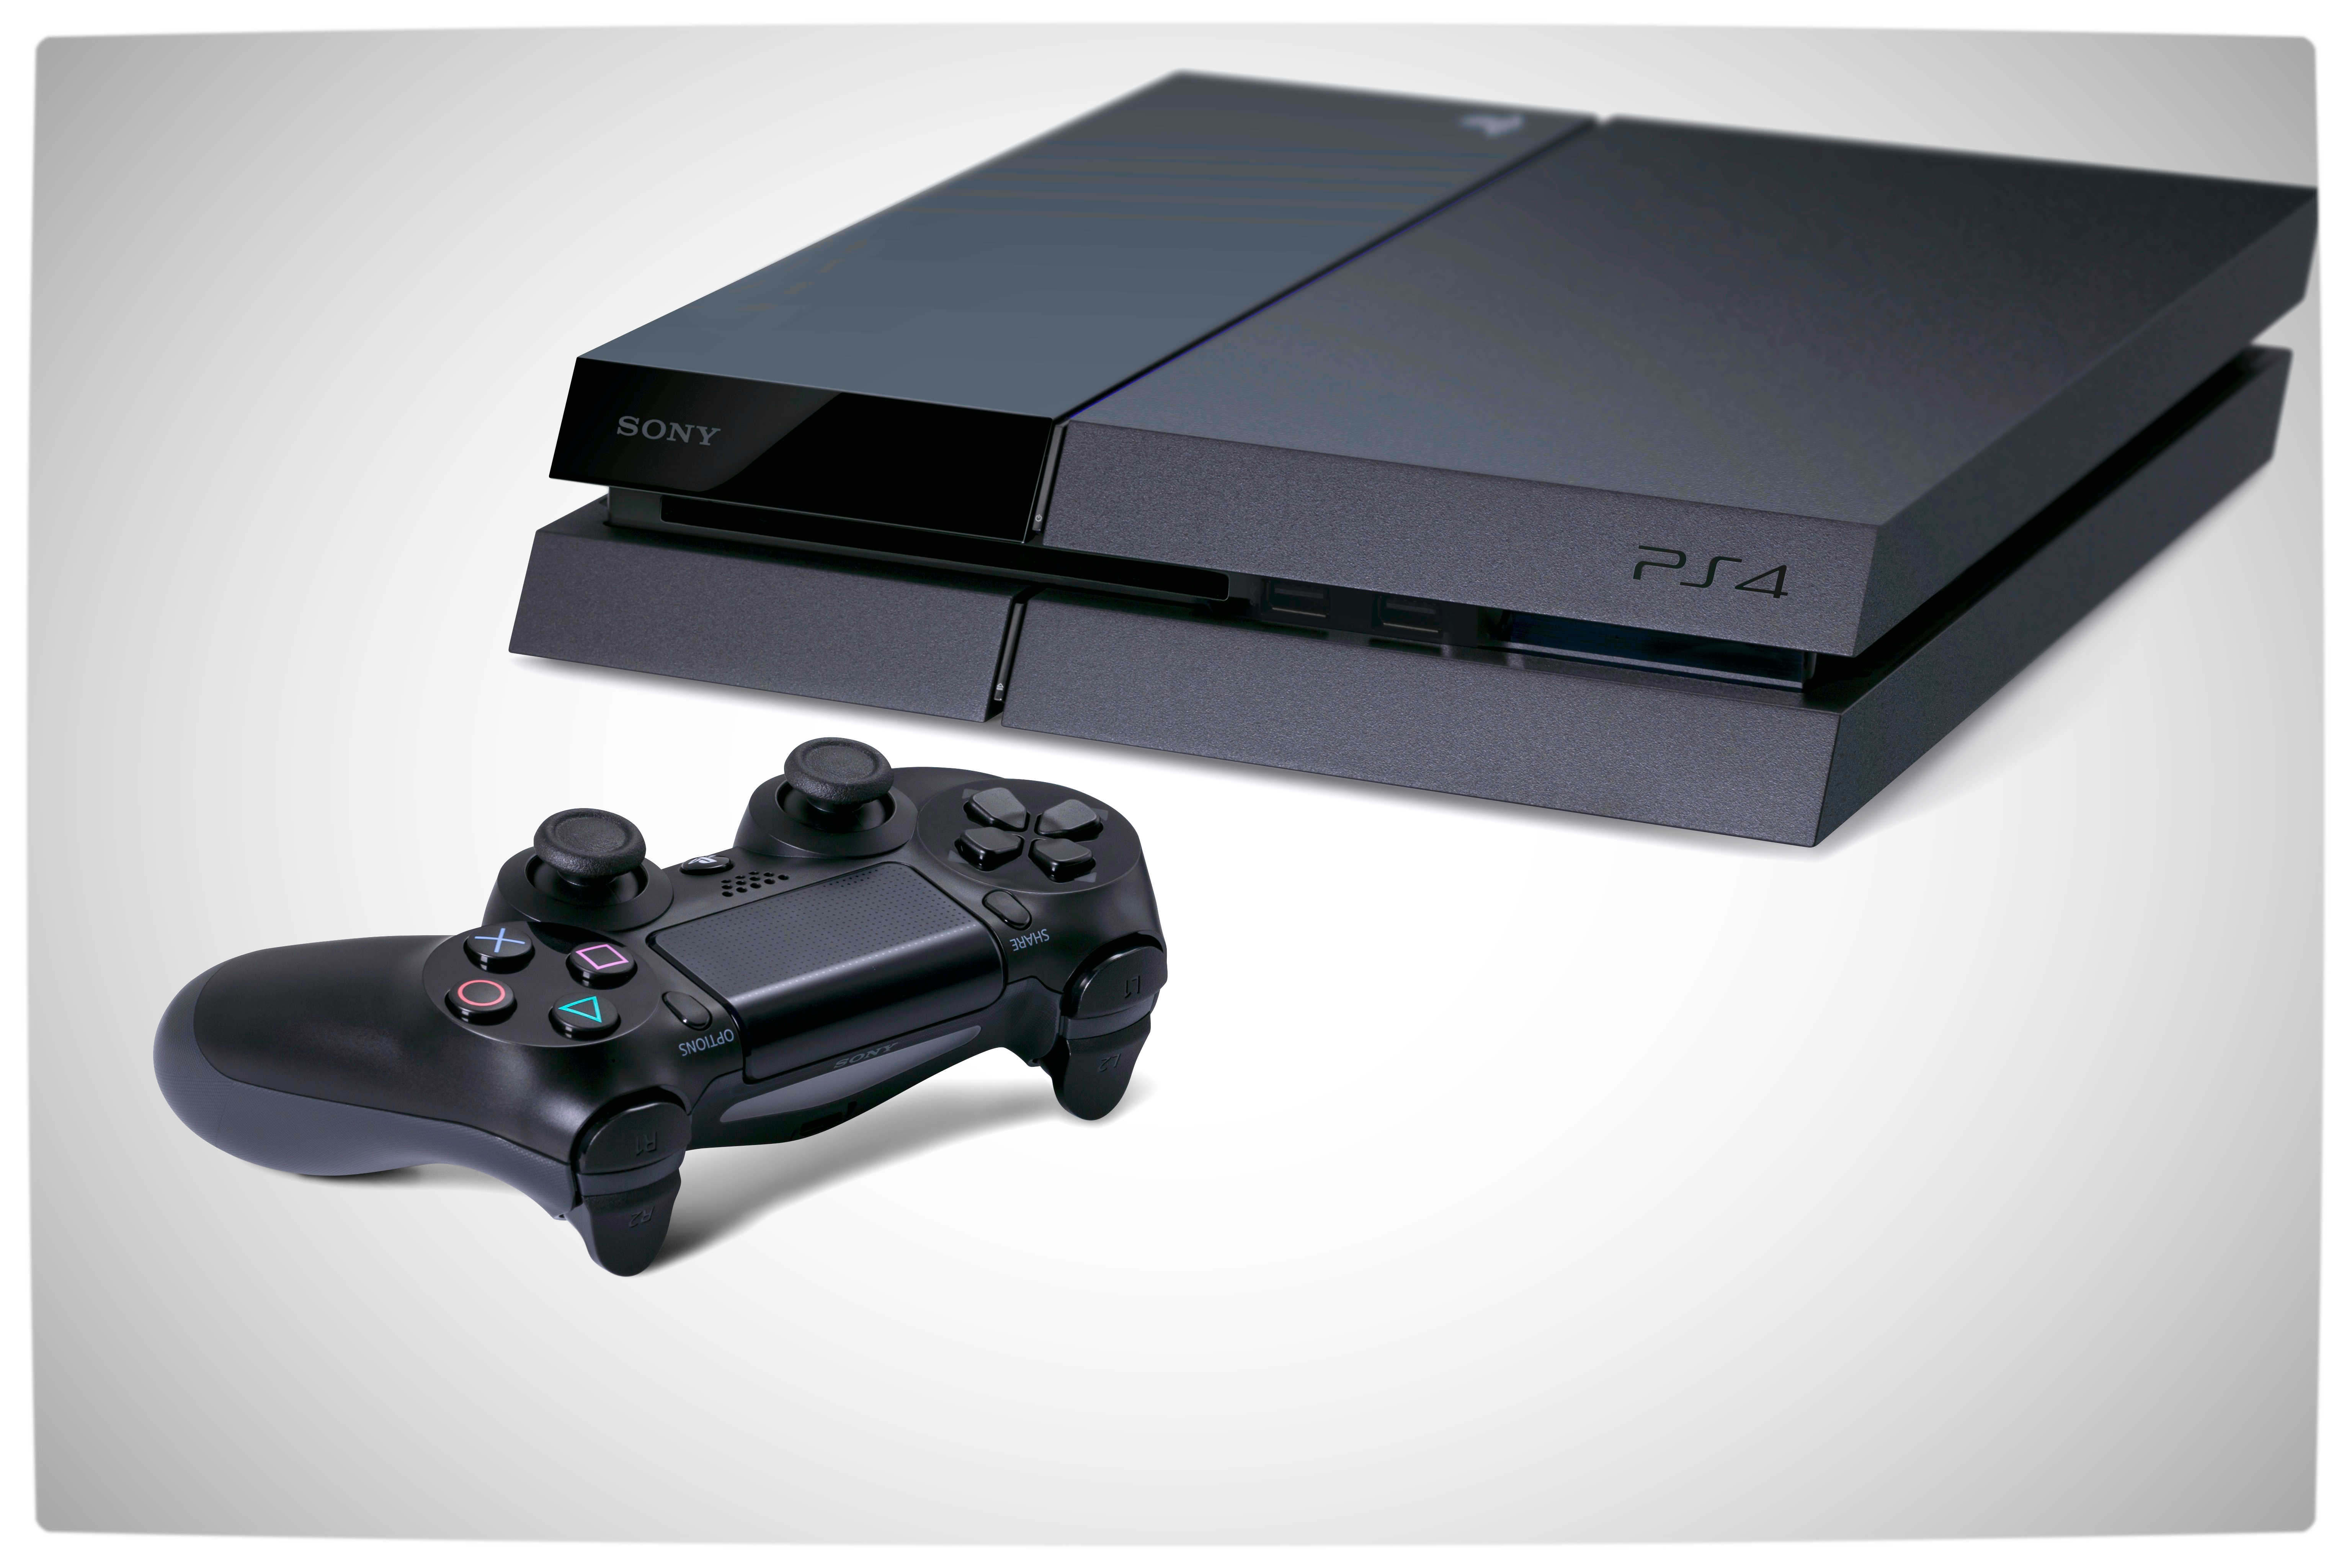 Sony s playstation 4 to launch in south africa this december vamers